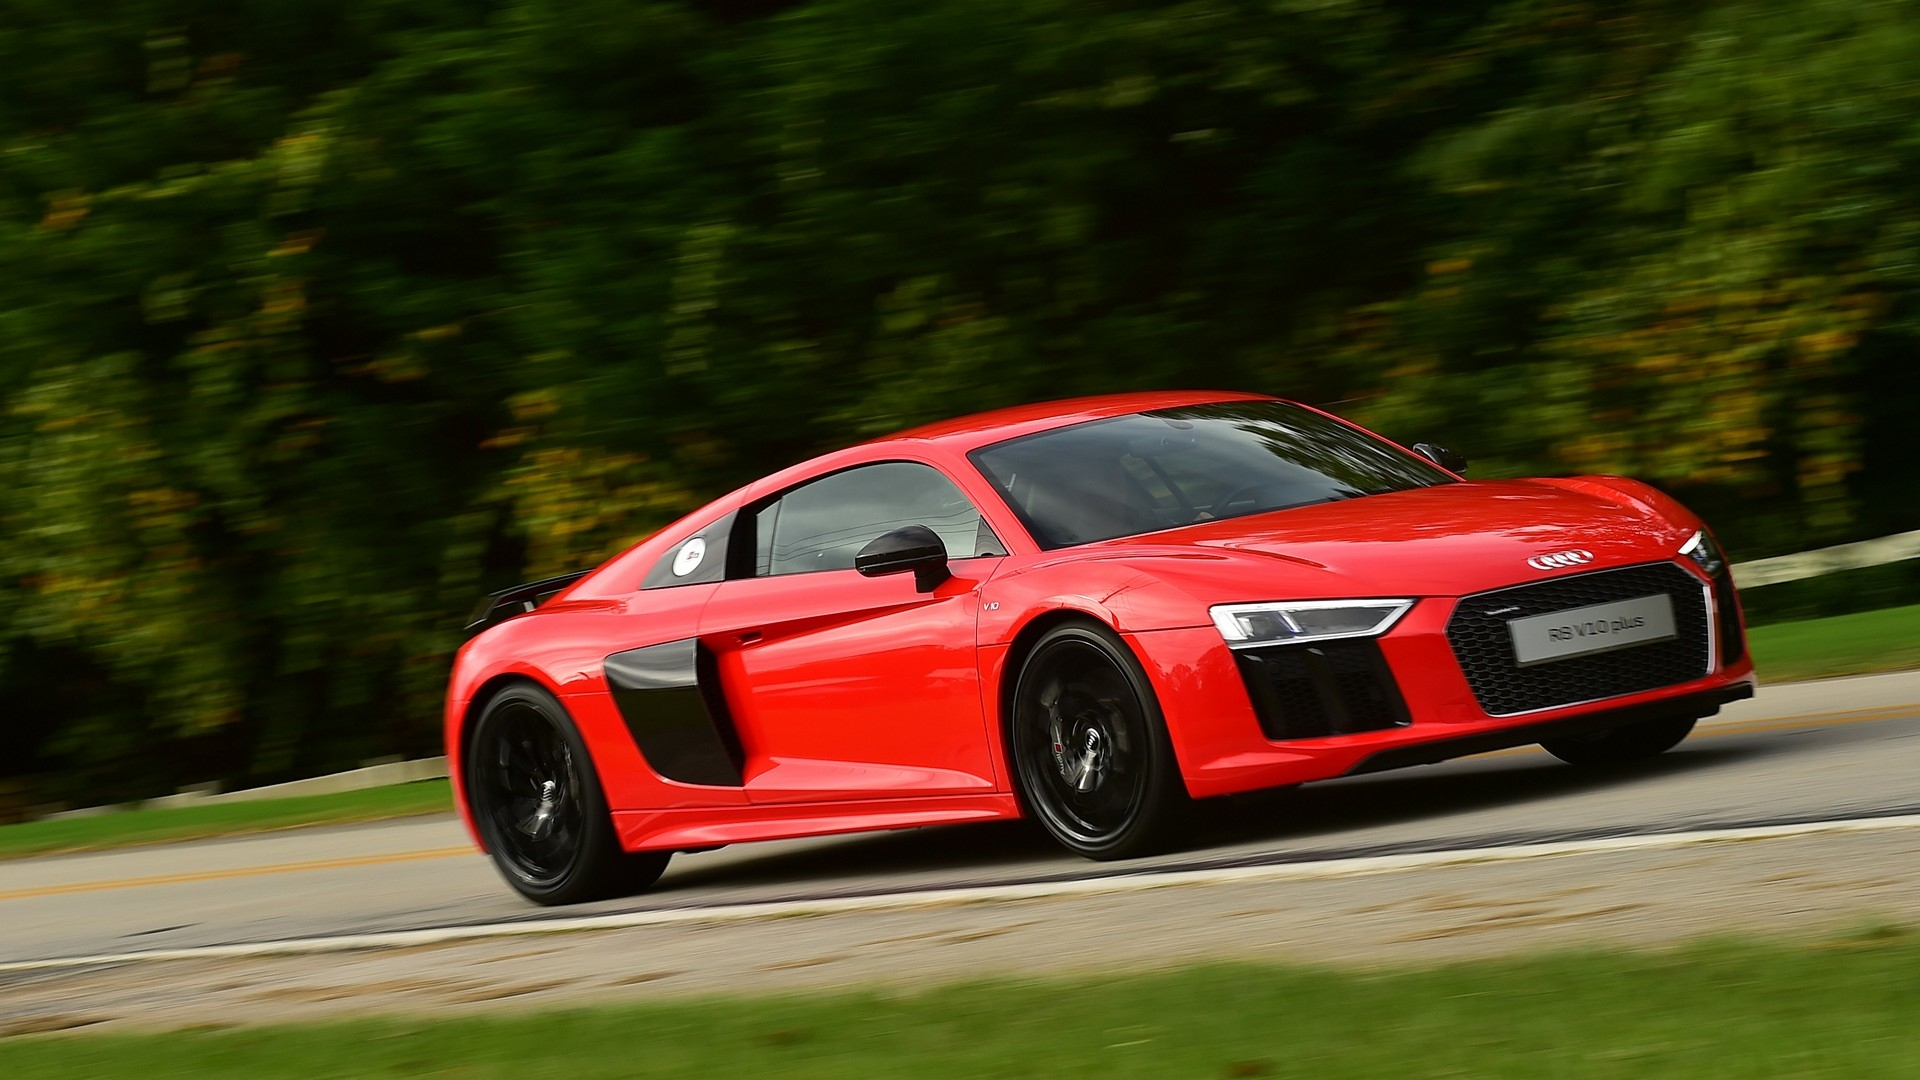 audi-r-sport-rain-race-Audi-Of-America-Announces-Pricing-For-The-All-New-R-The-wallpaper-wpc5802360